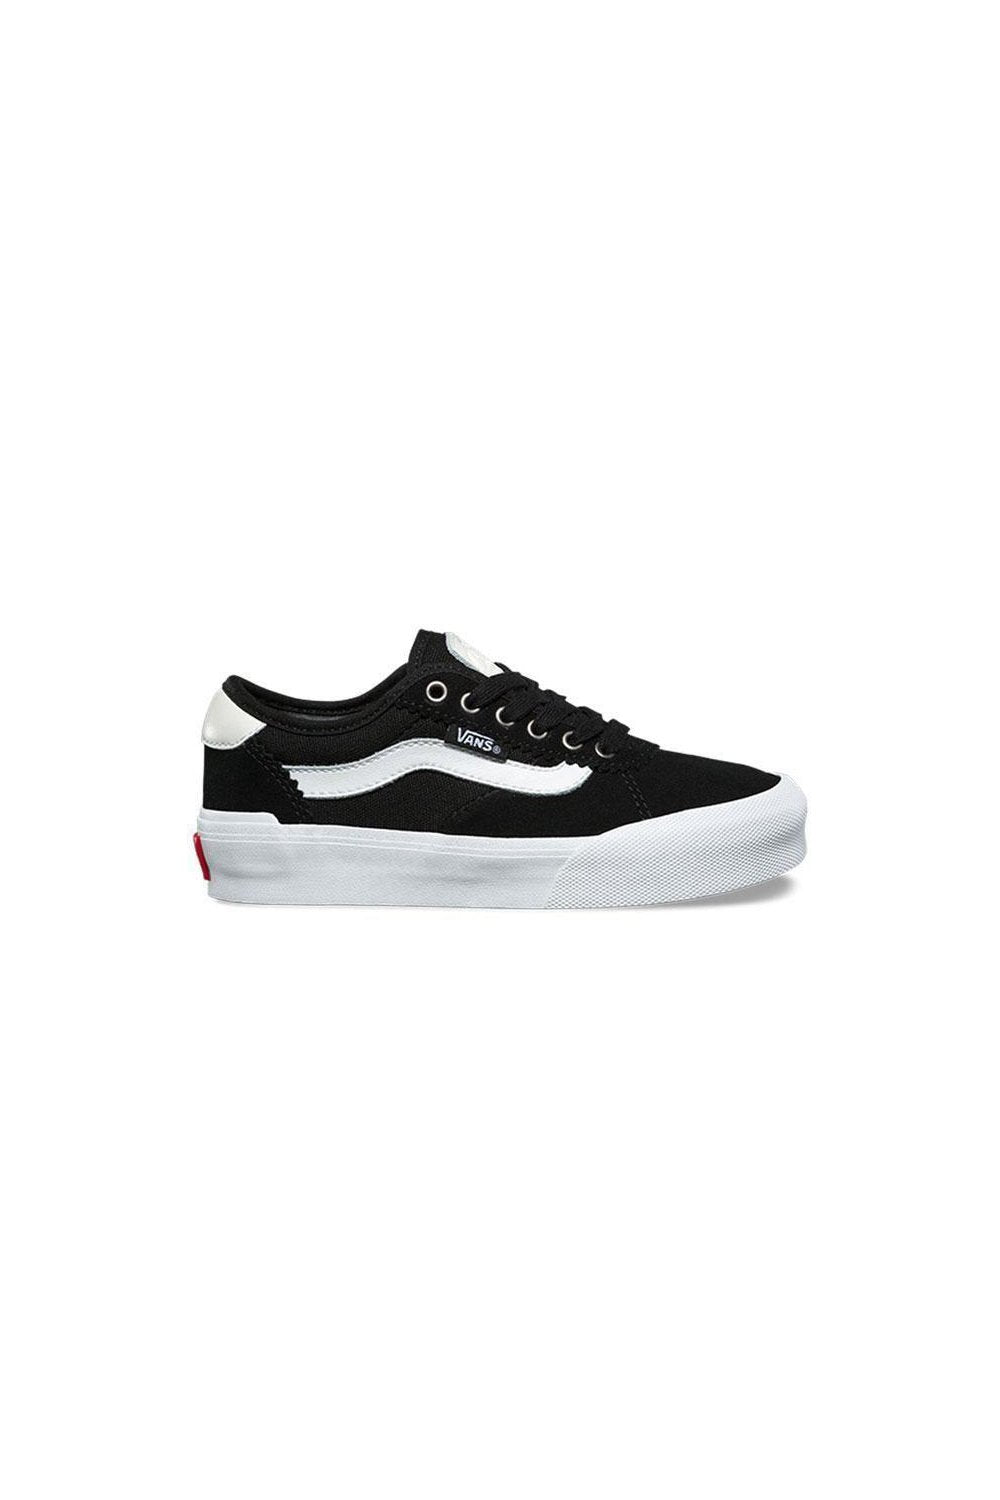 Vans Chima Pro 2 Youth Shoe